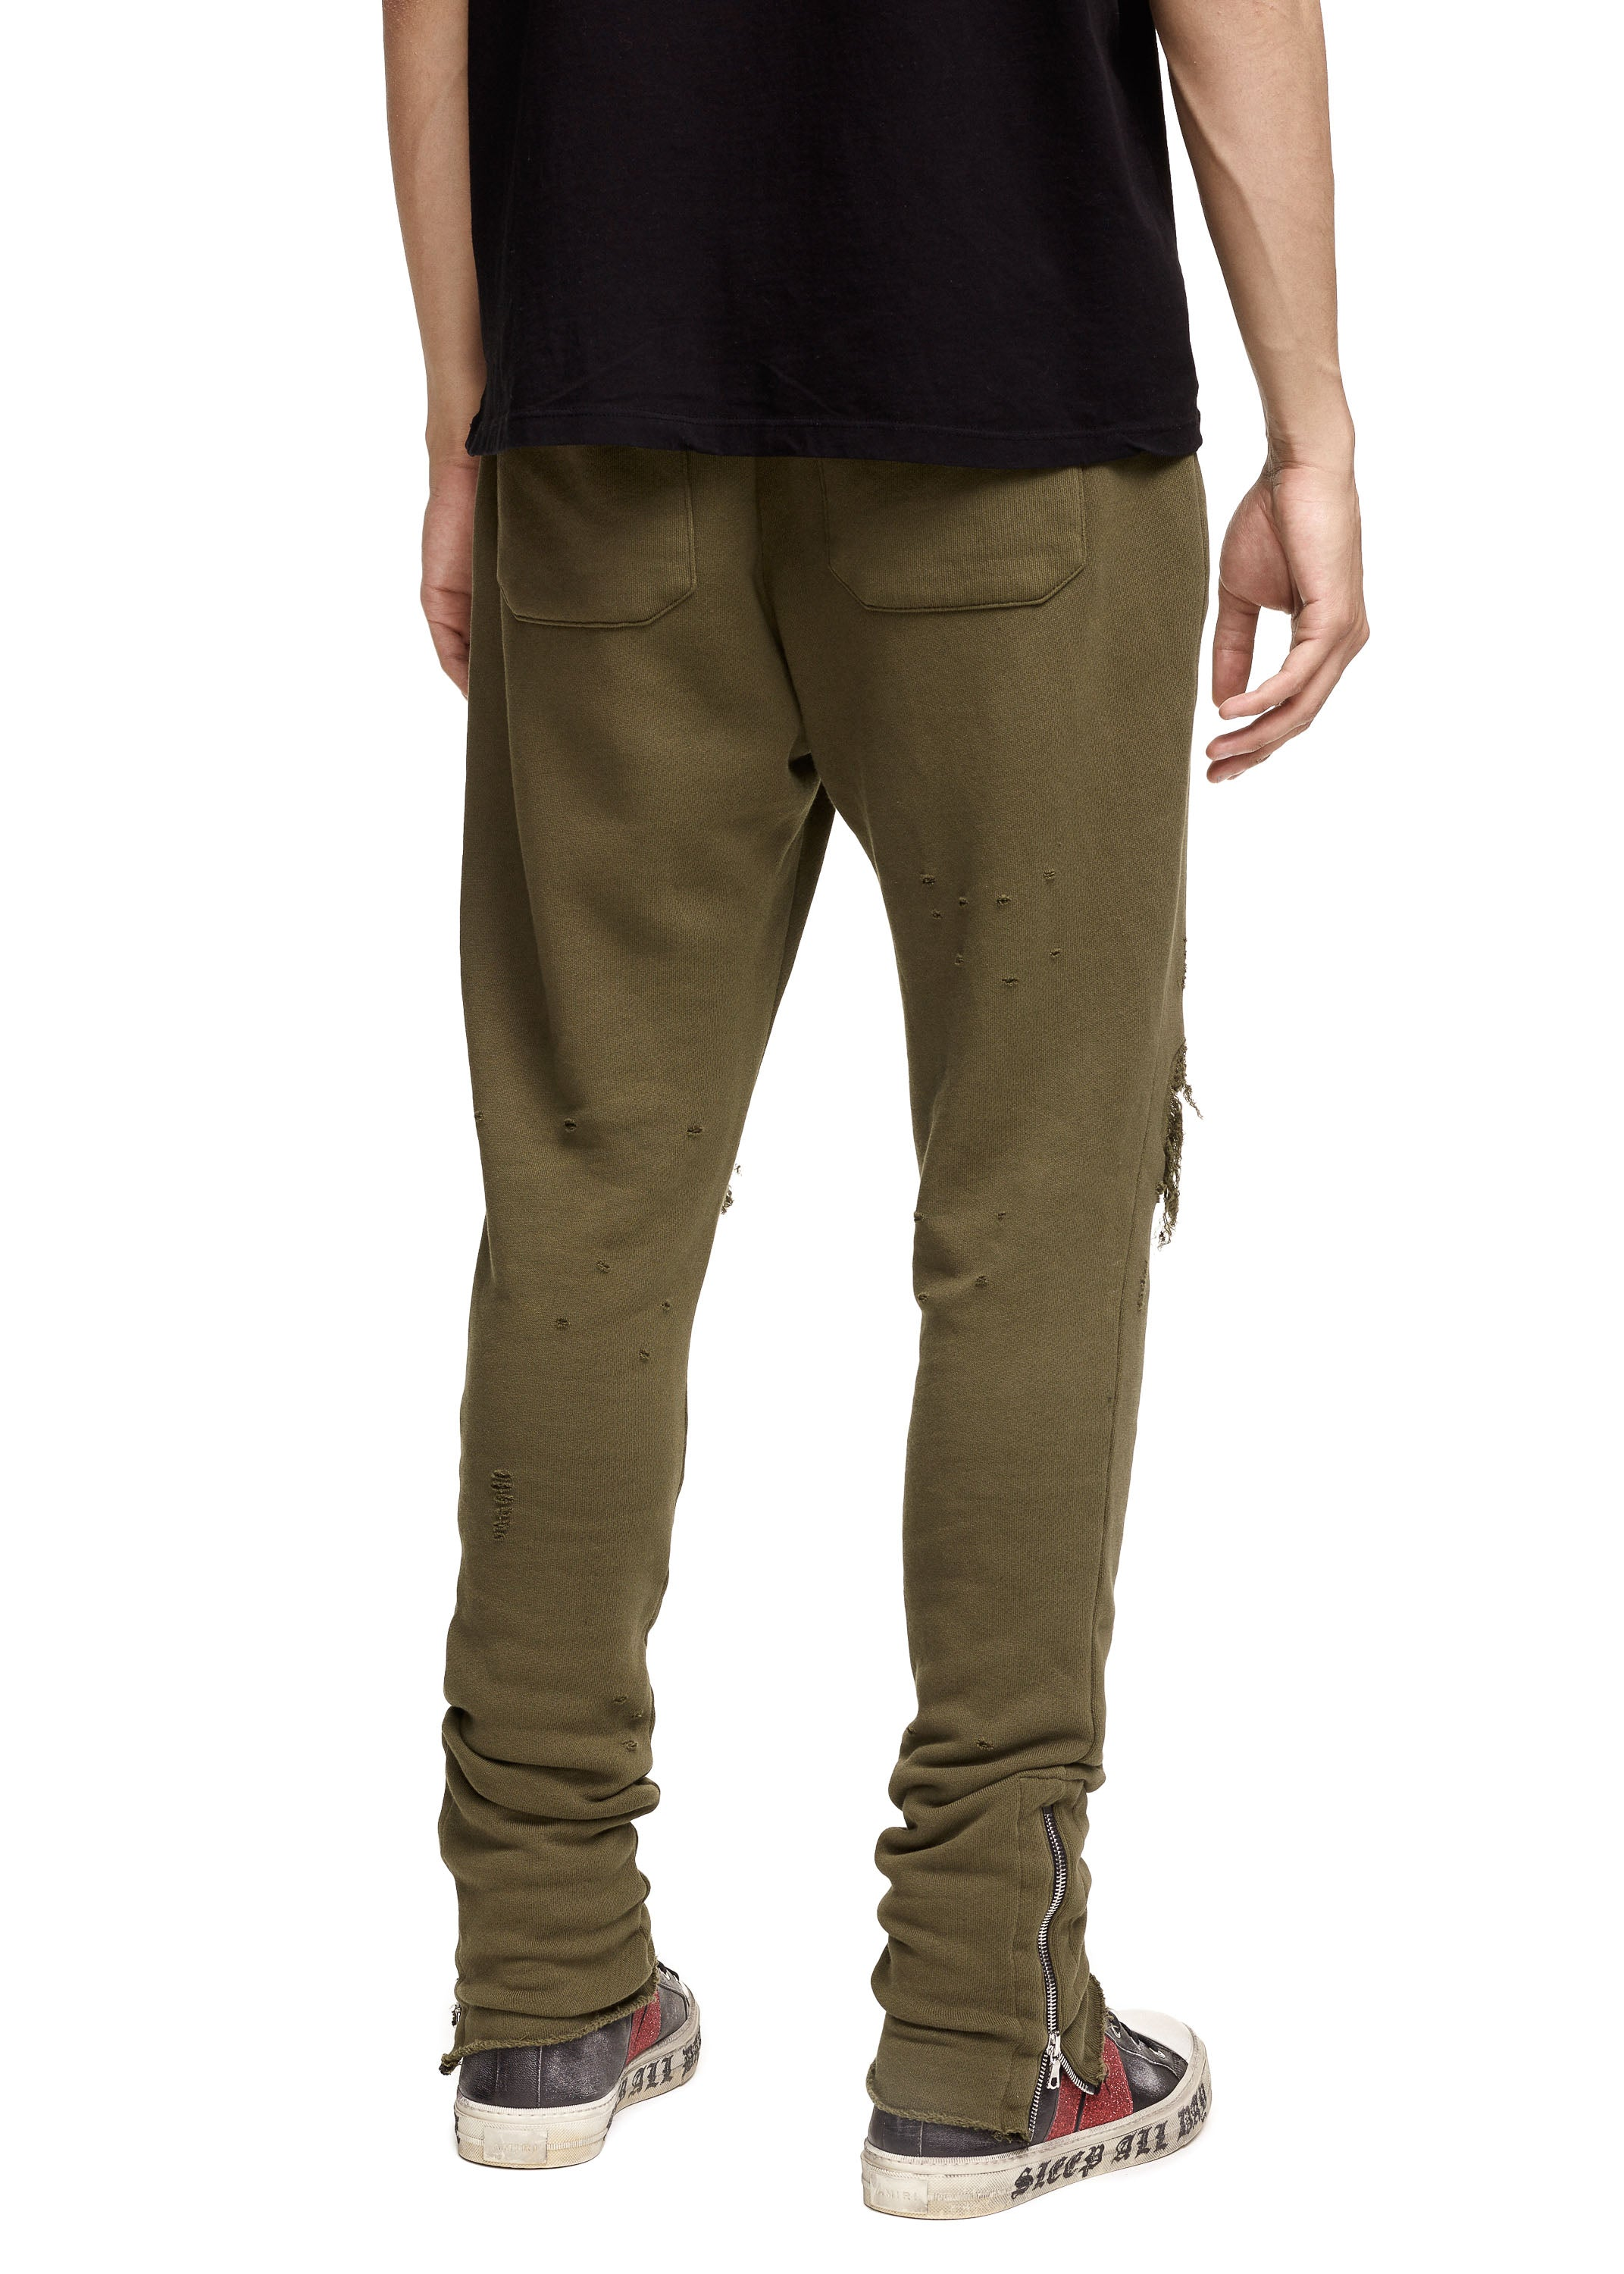 mx1-sweats-olive-image-3